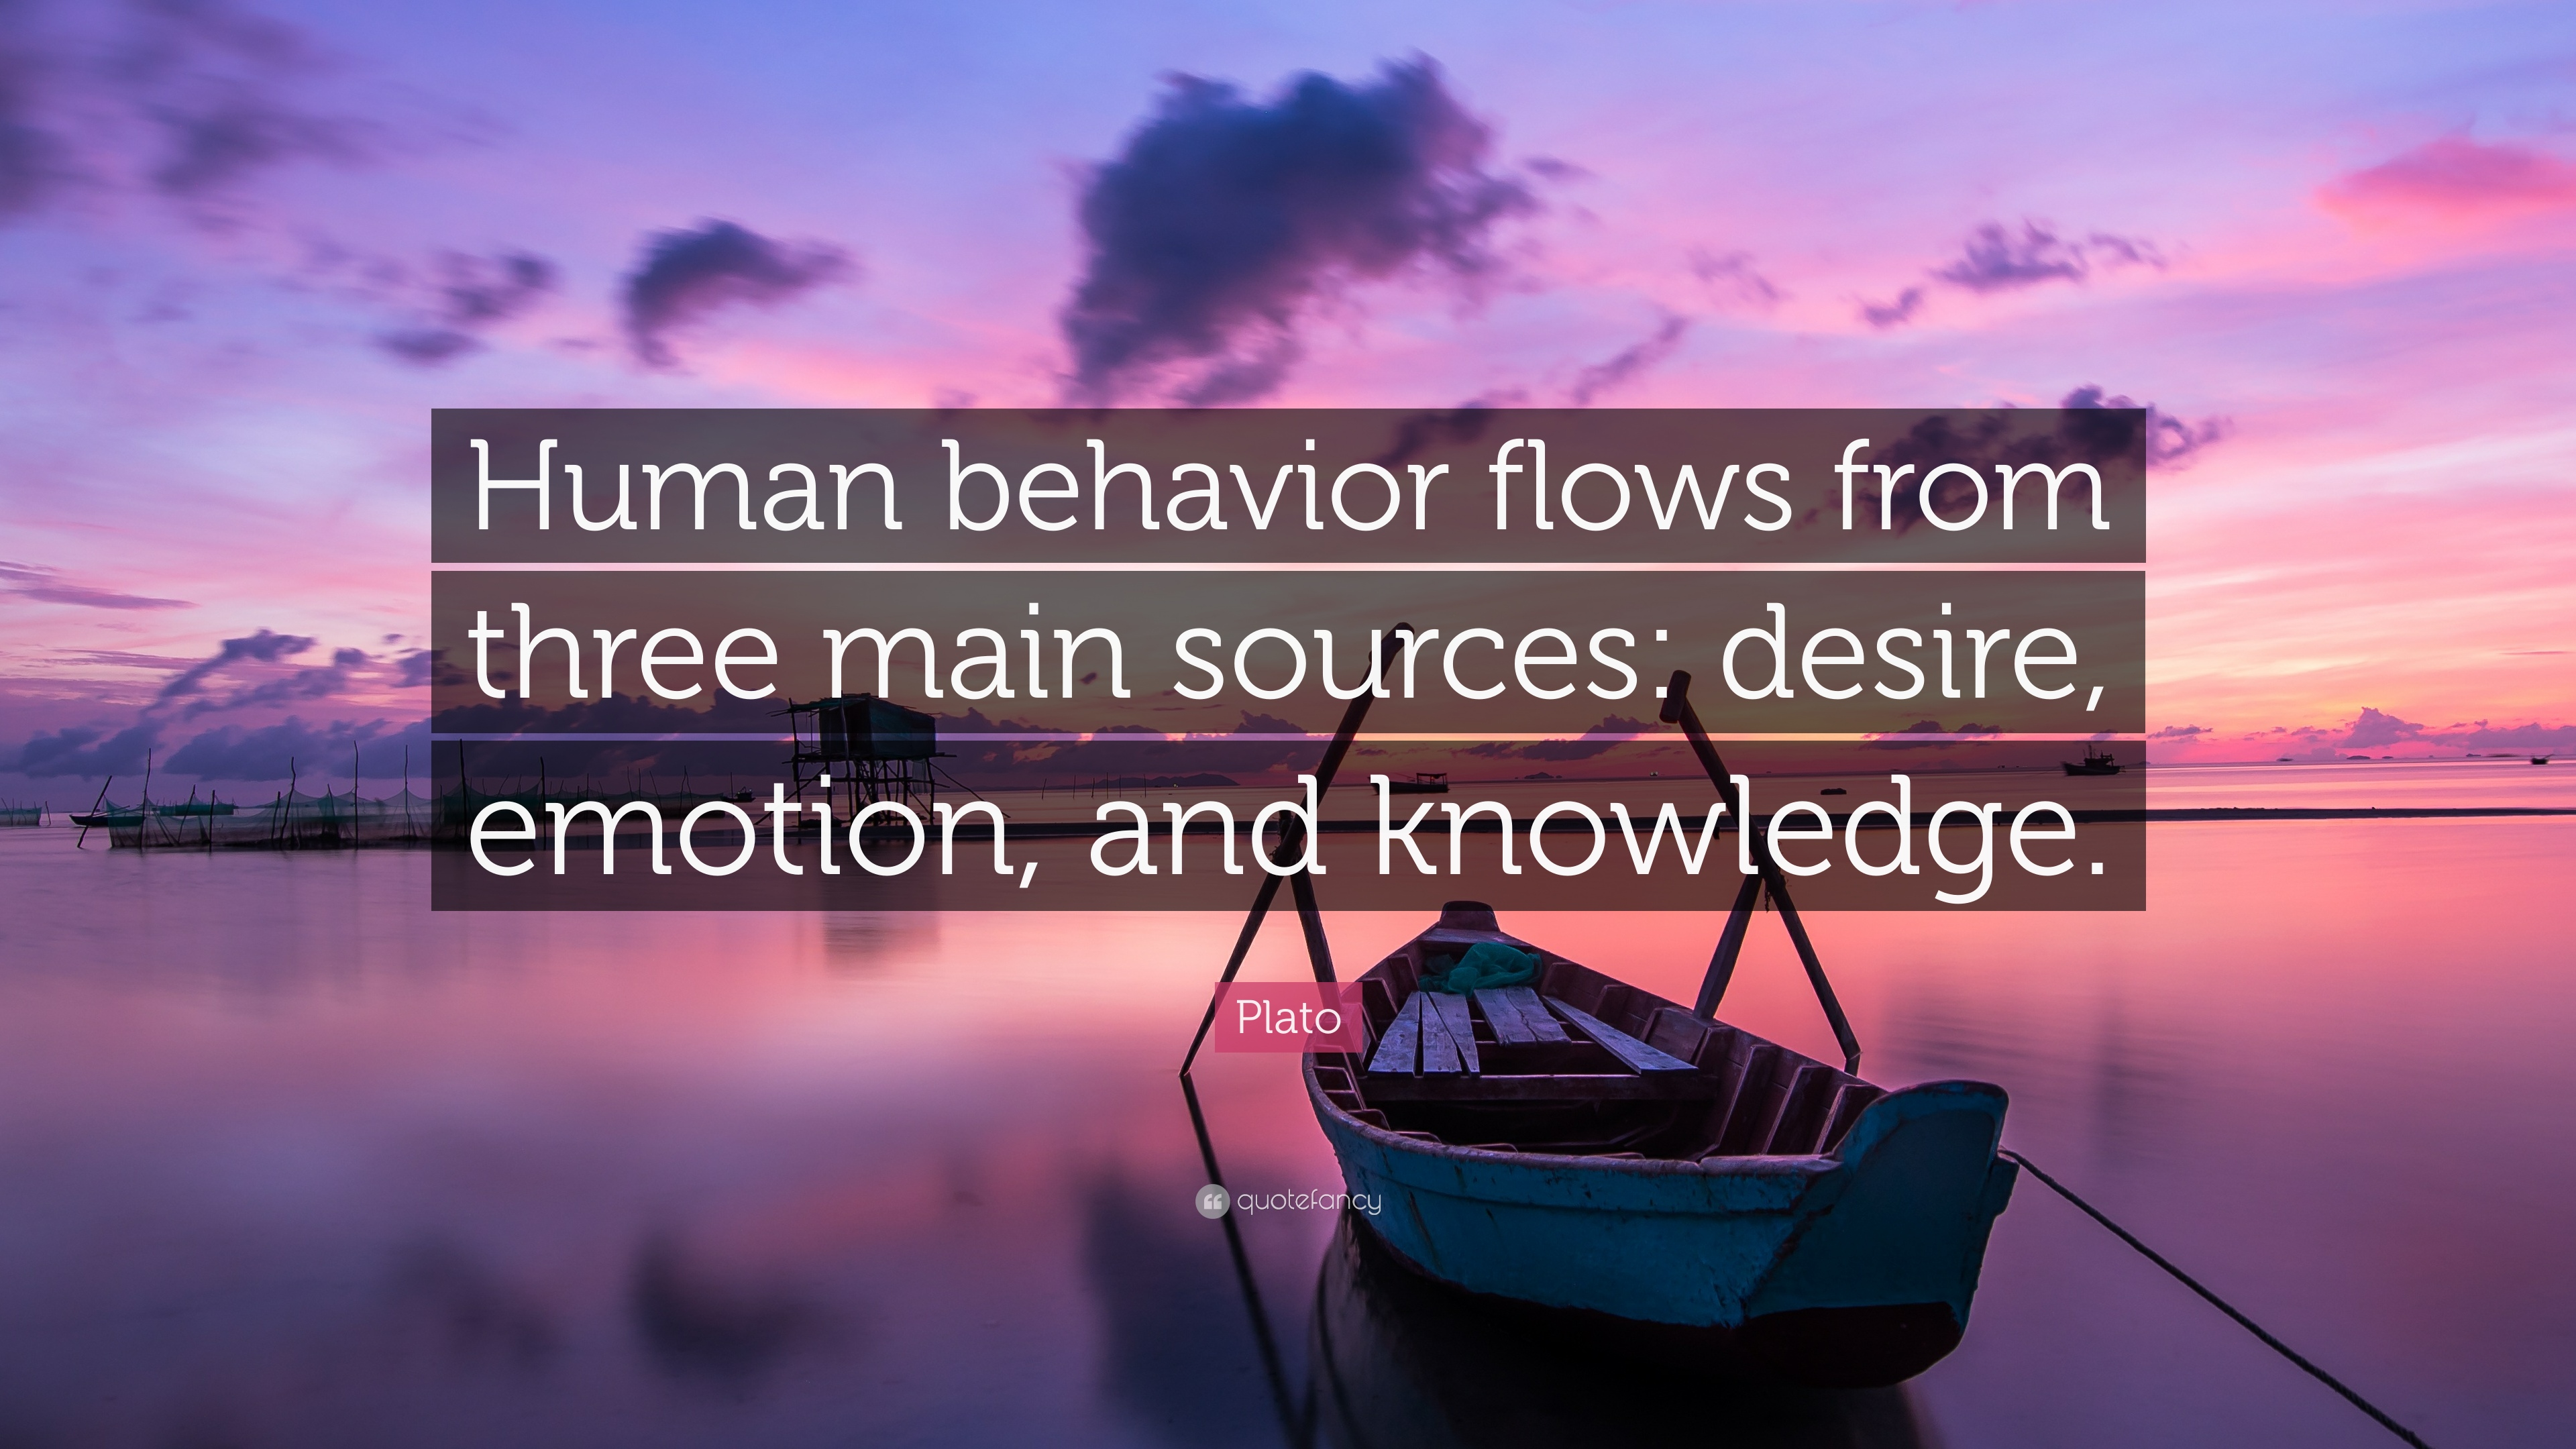 human behavior flows from three main sources desire emotion and knowledge In plato's words, ''human behavior flows from three main sources: desire, emotion, and knowledge'' when these three ingredients get mixed up successfully in marketing, the winning .